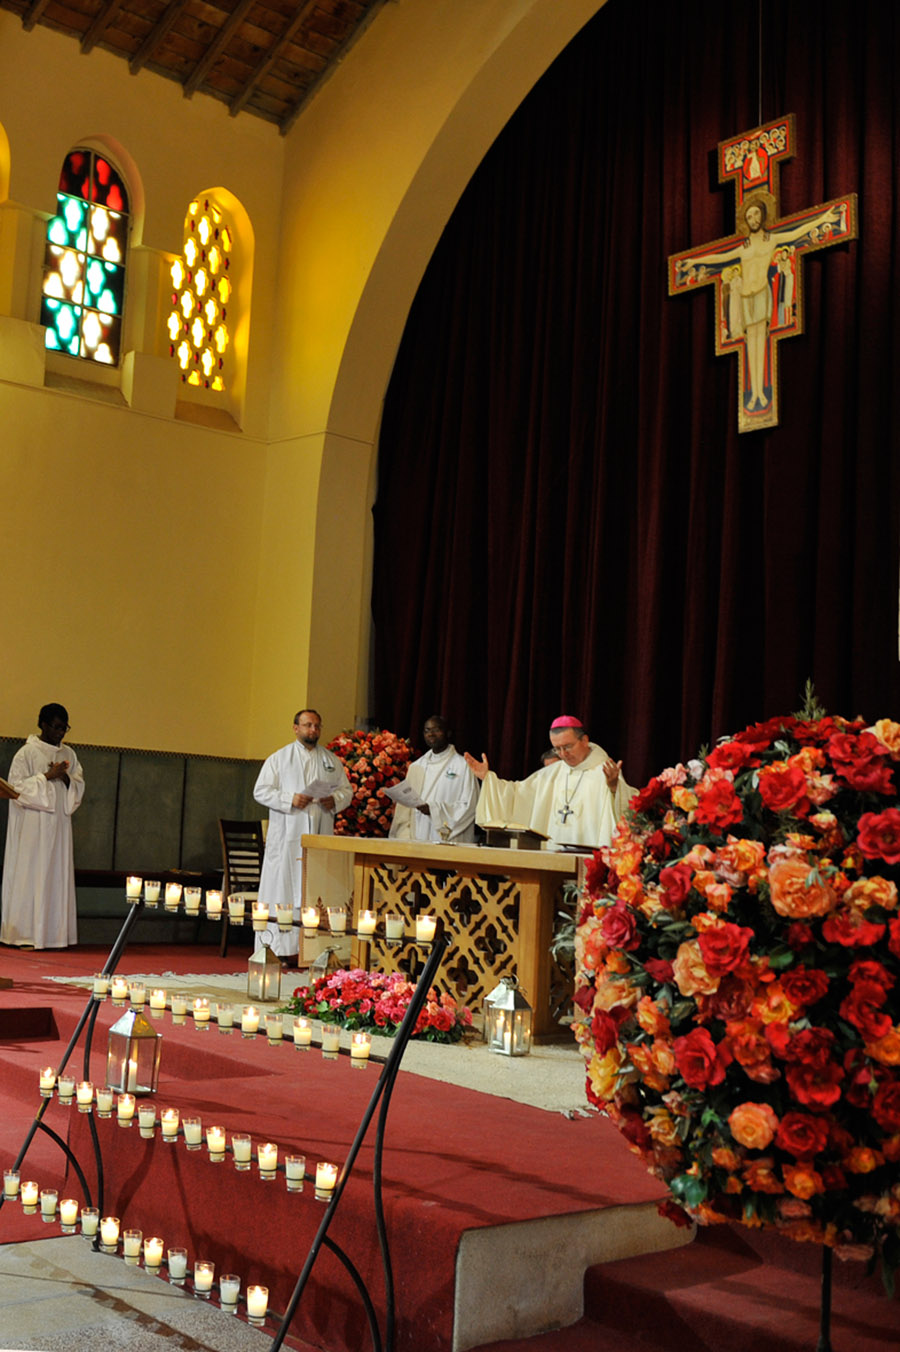 Celebration of a mass by the bishop of Rabat at the Church of the Martyr Saints,  Marrakech, 2012